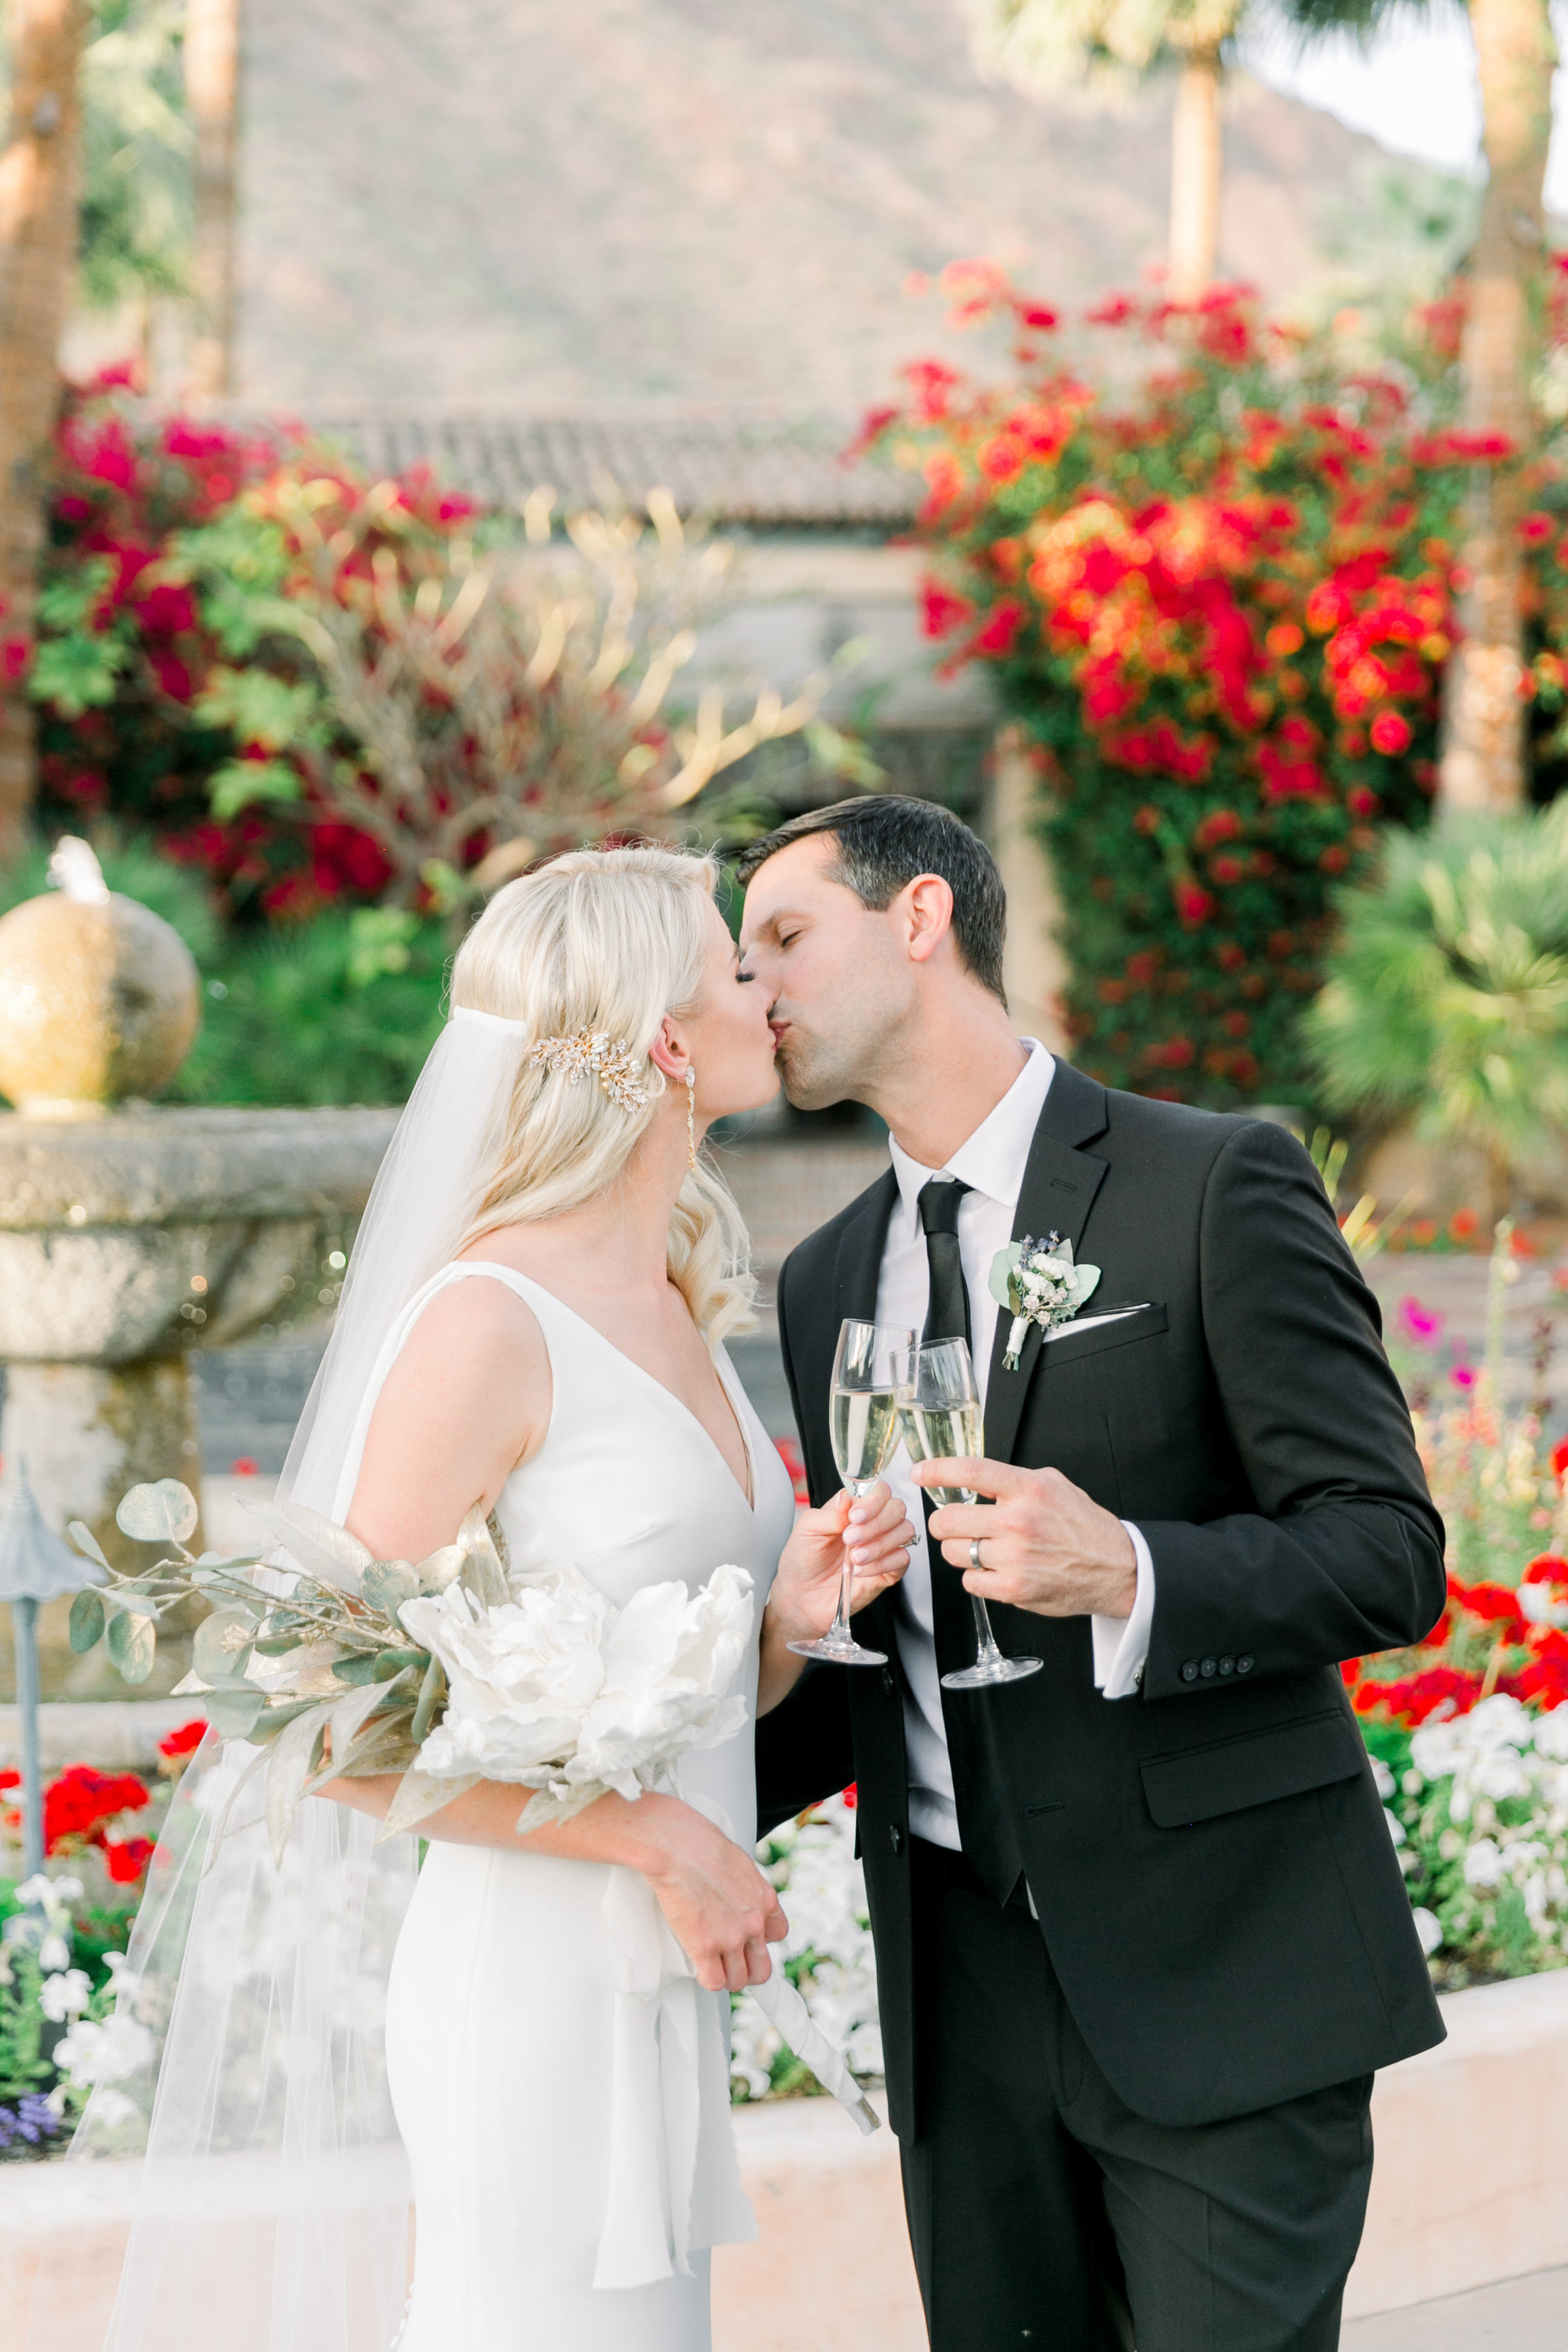 Karlie Colleen Photography - The Royal Palms - Arizona Wedding - Alex & Alex-578